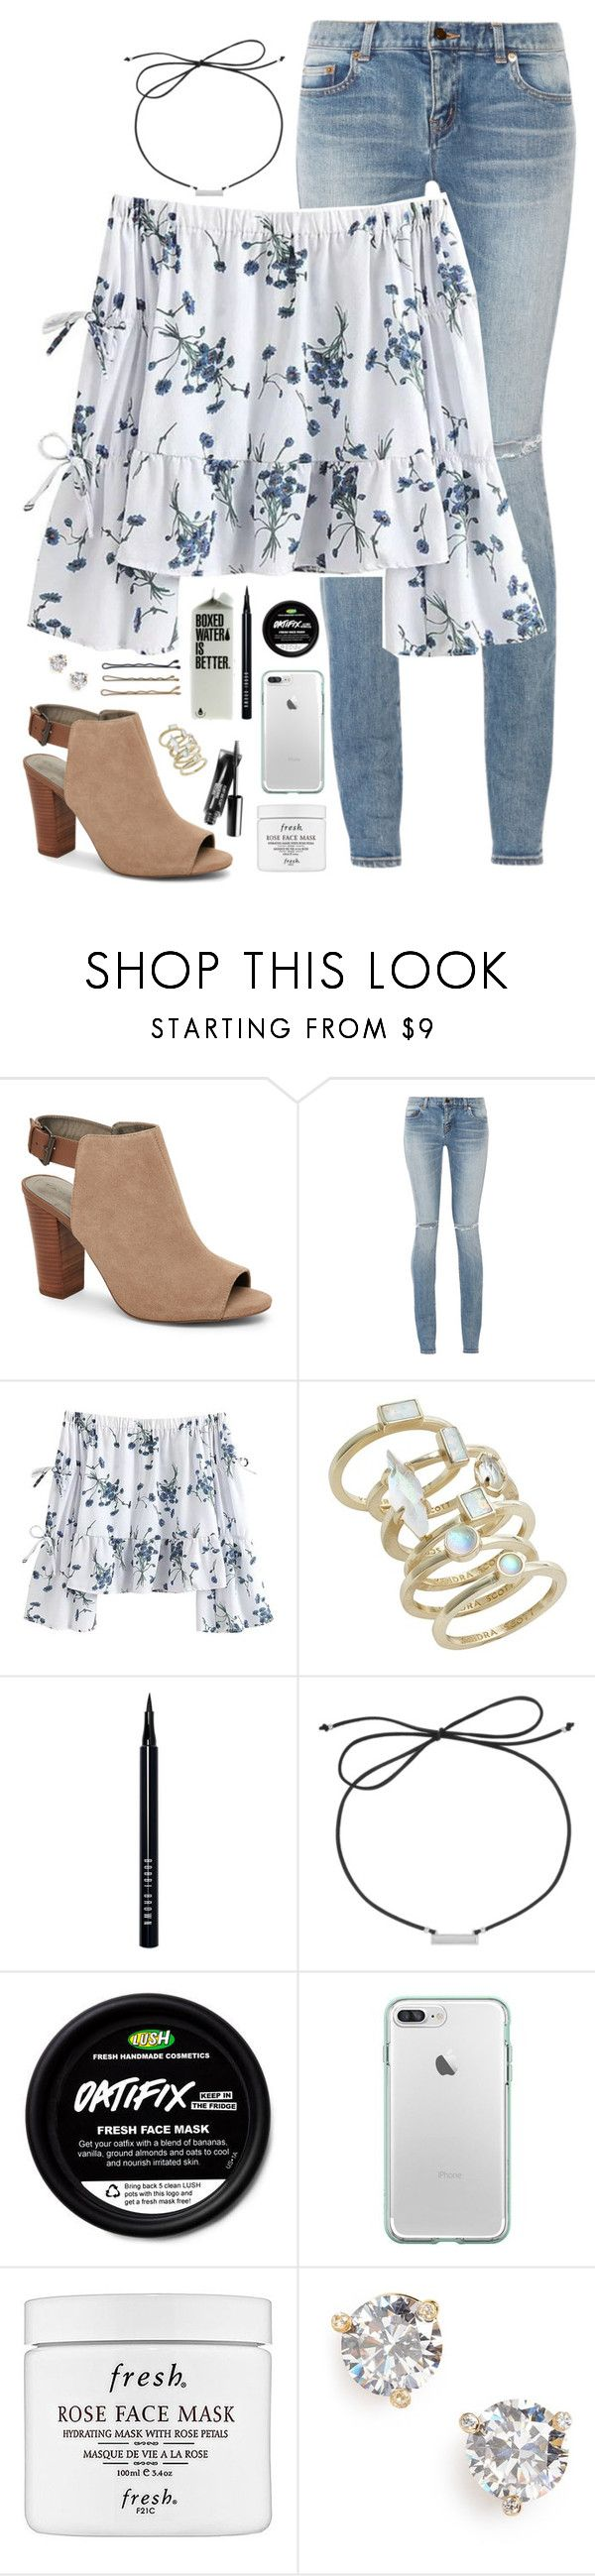 """""""trying out a new style?"""" by simplysarahkate ❤ liked on Polyvore featuring Tahari, Yves Saint Laurent, Kendra Scott, Bobbi Brown Cosmetics, Laundry by Shelli Segal, Guide London, Fresh and Kate Spade"""